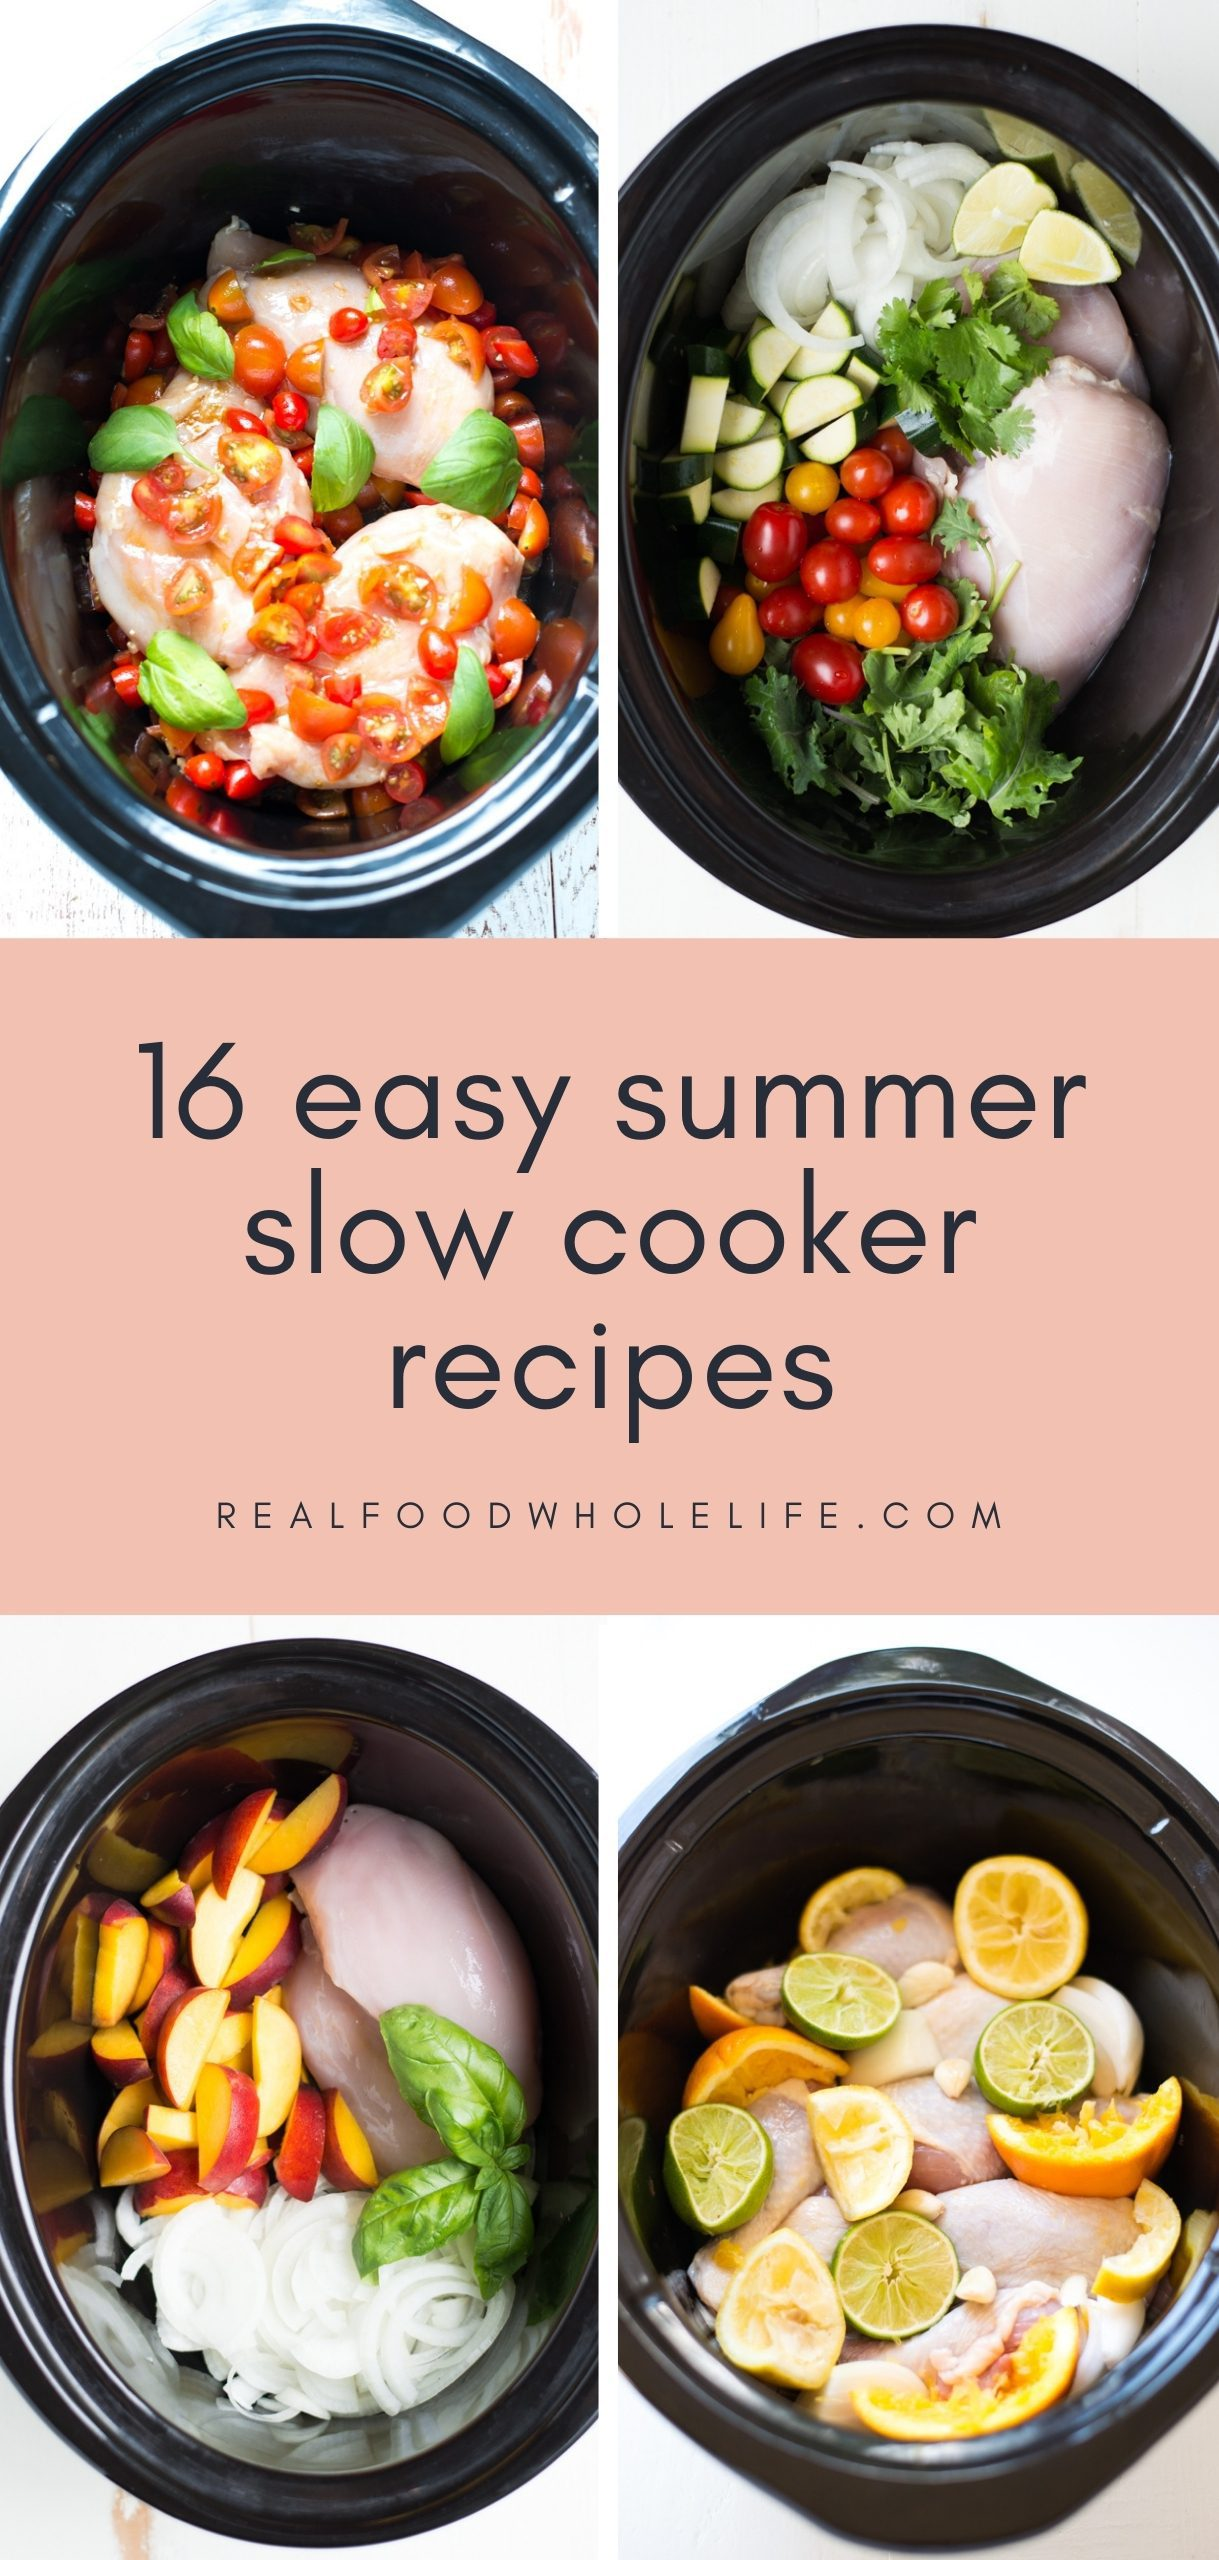 four black slow cookers with chicken and summer veggies and fruits inside with pink background and navy text